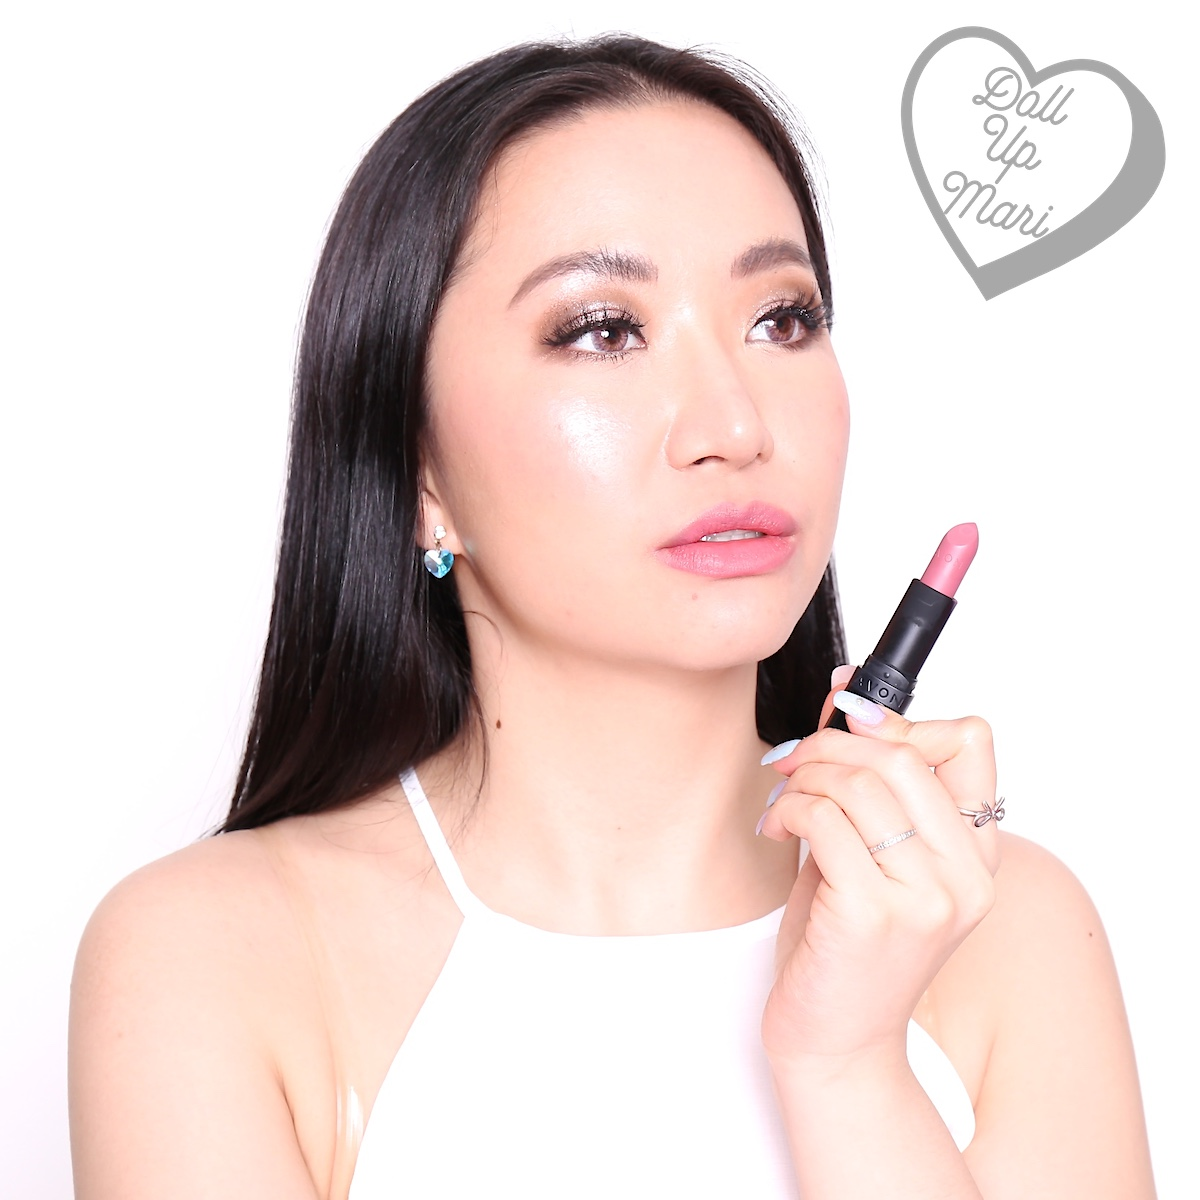 Wearing Pink Truffle shade of AVON Perfectly Matte Lipstick